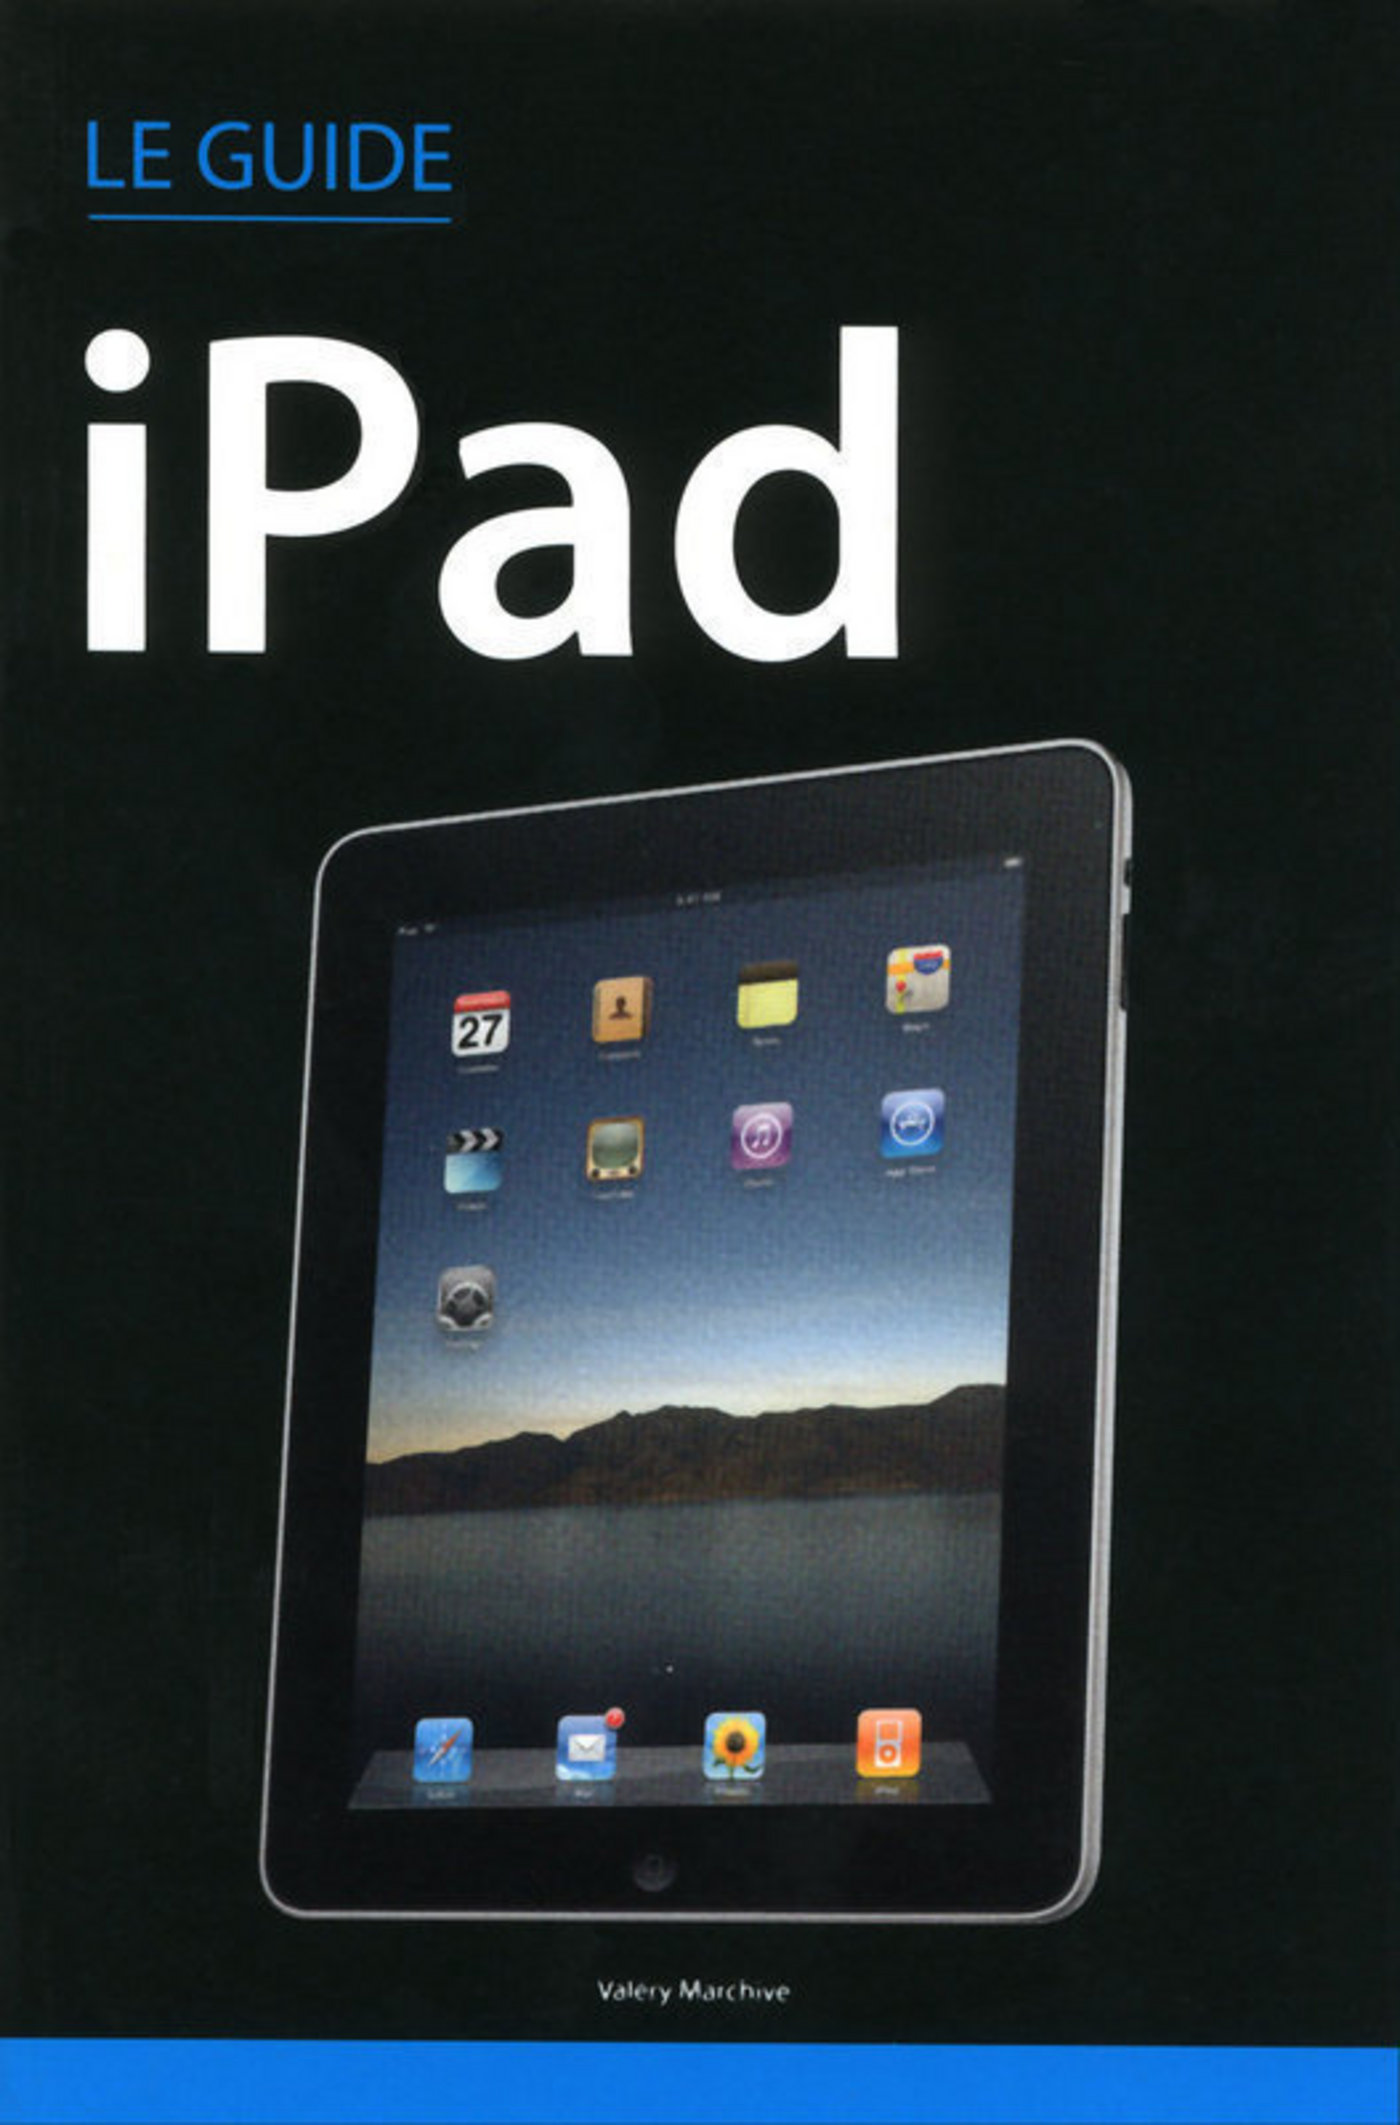 Le guide iPad (ebook)